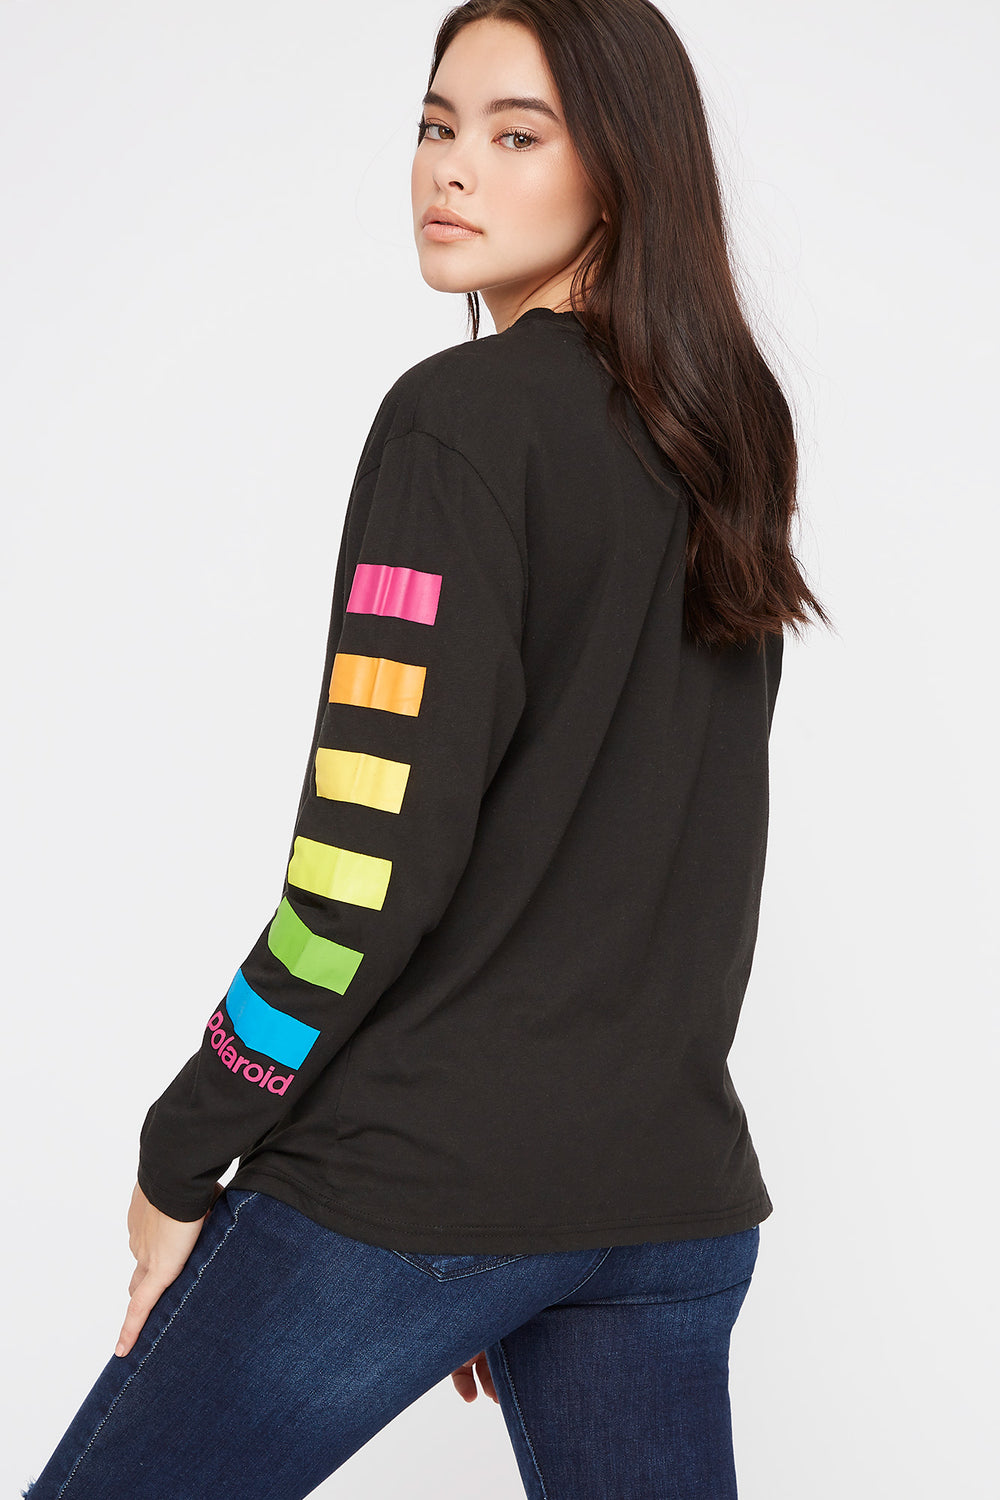 Polaroid Graphic Long Sleeve Black